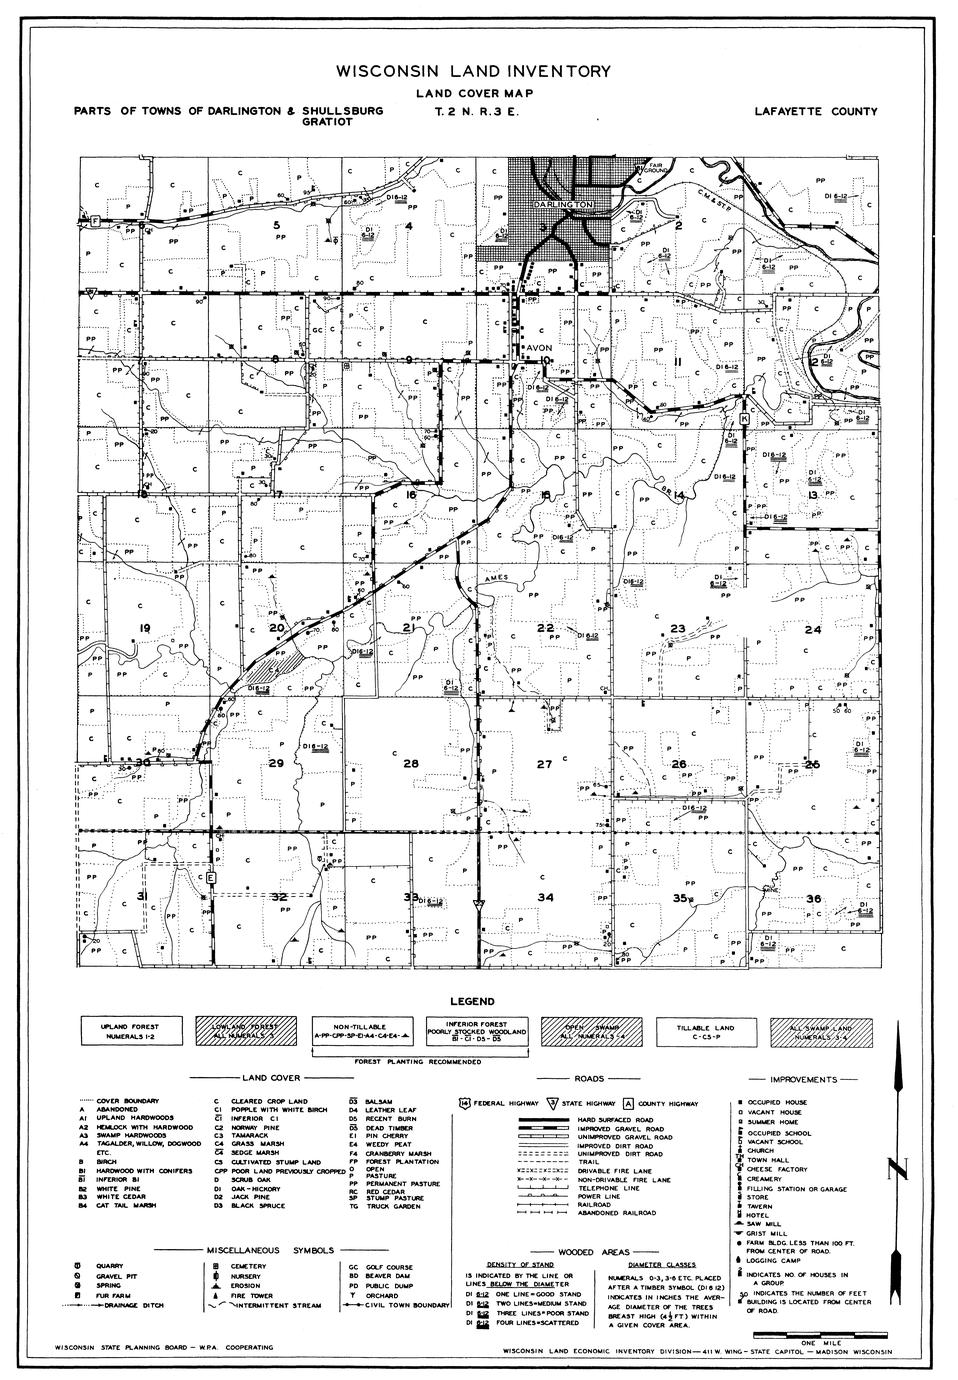 Parts of towns of Darlington, Shullsburg and Gratiot